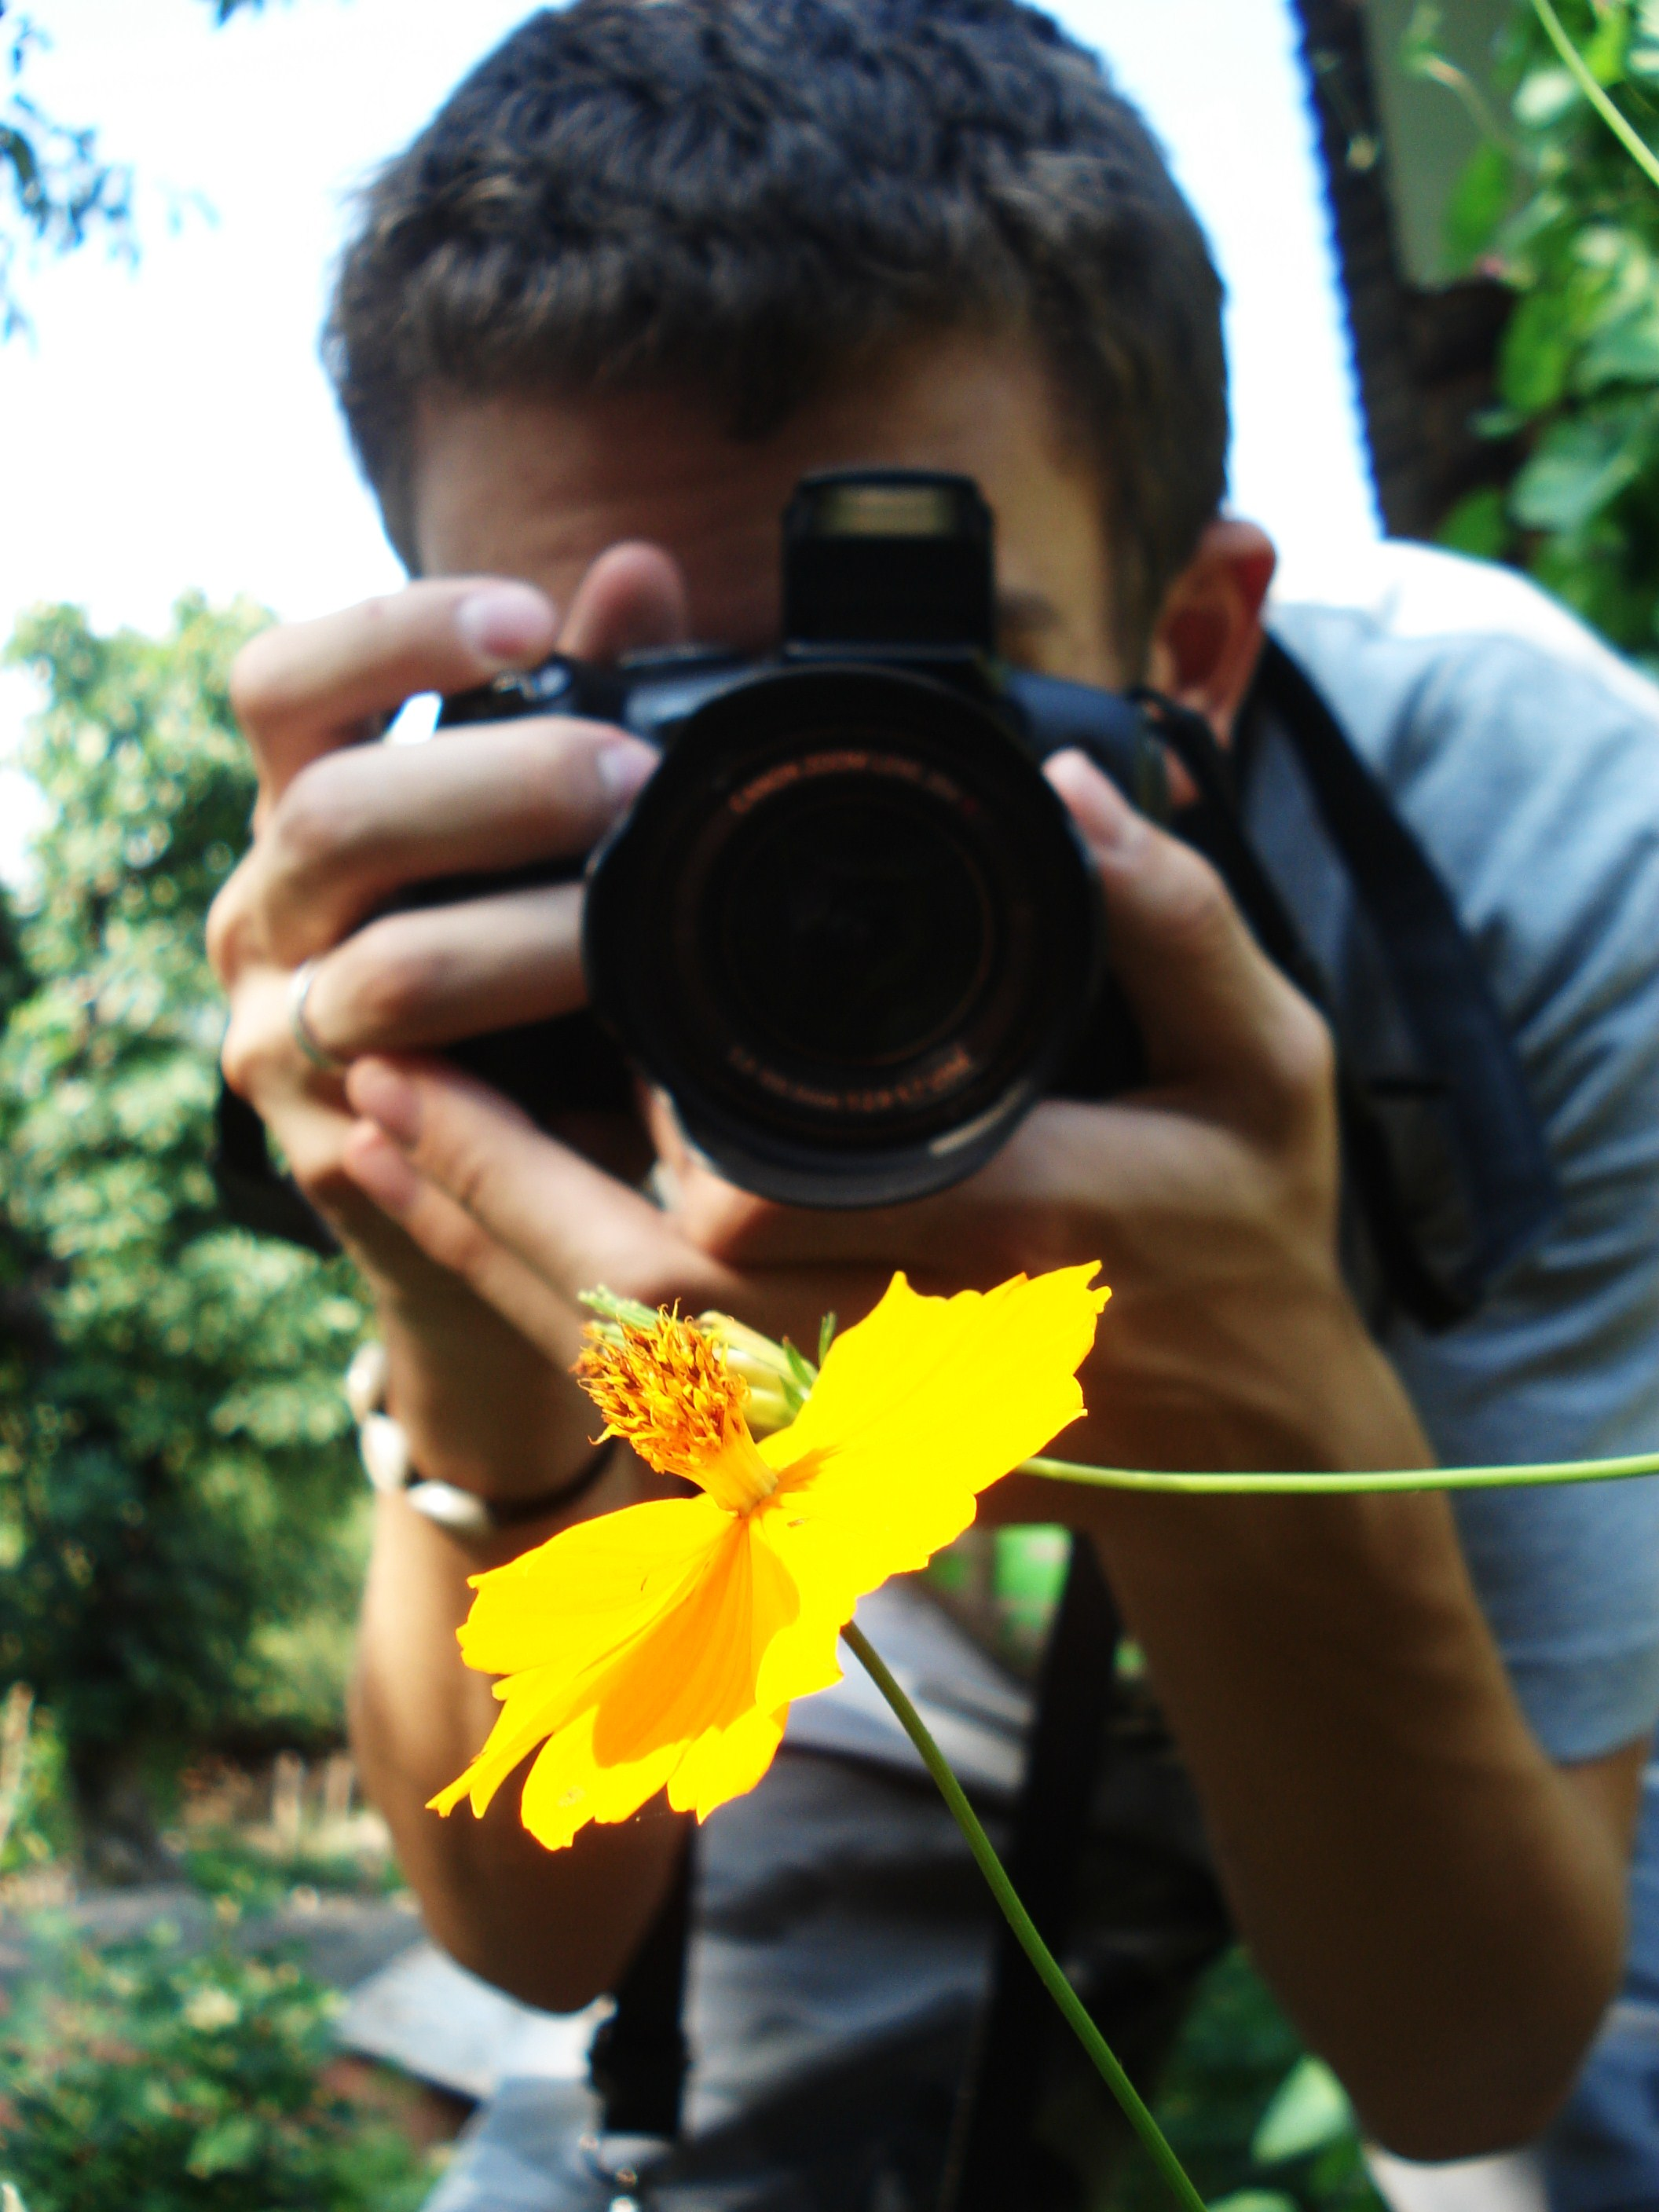 Photography-the guide to great photos